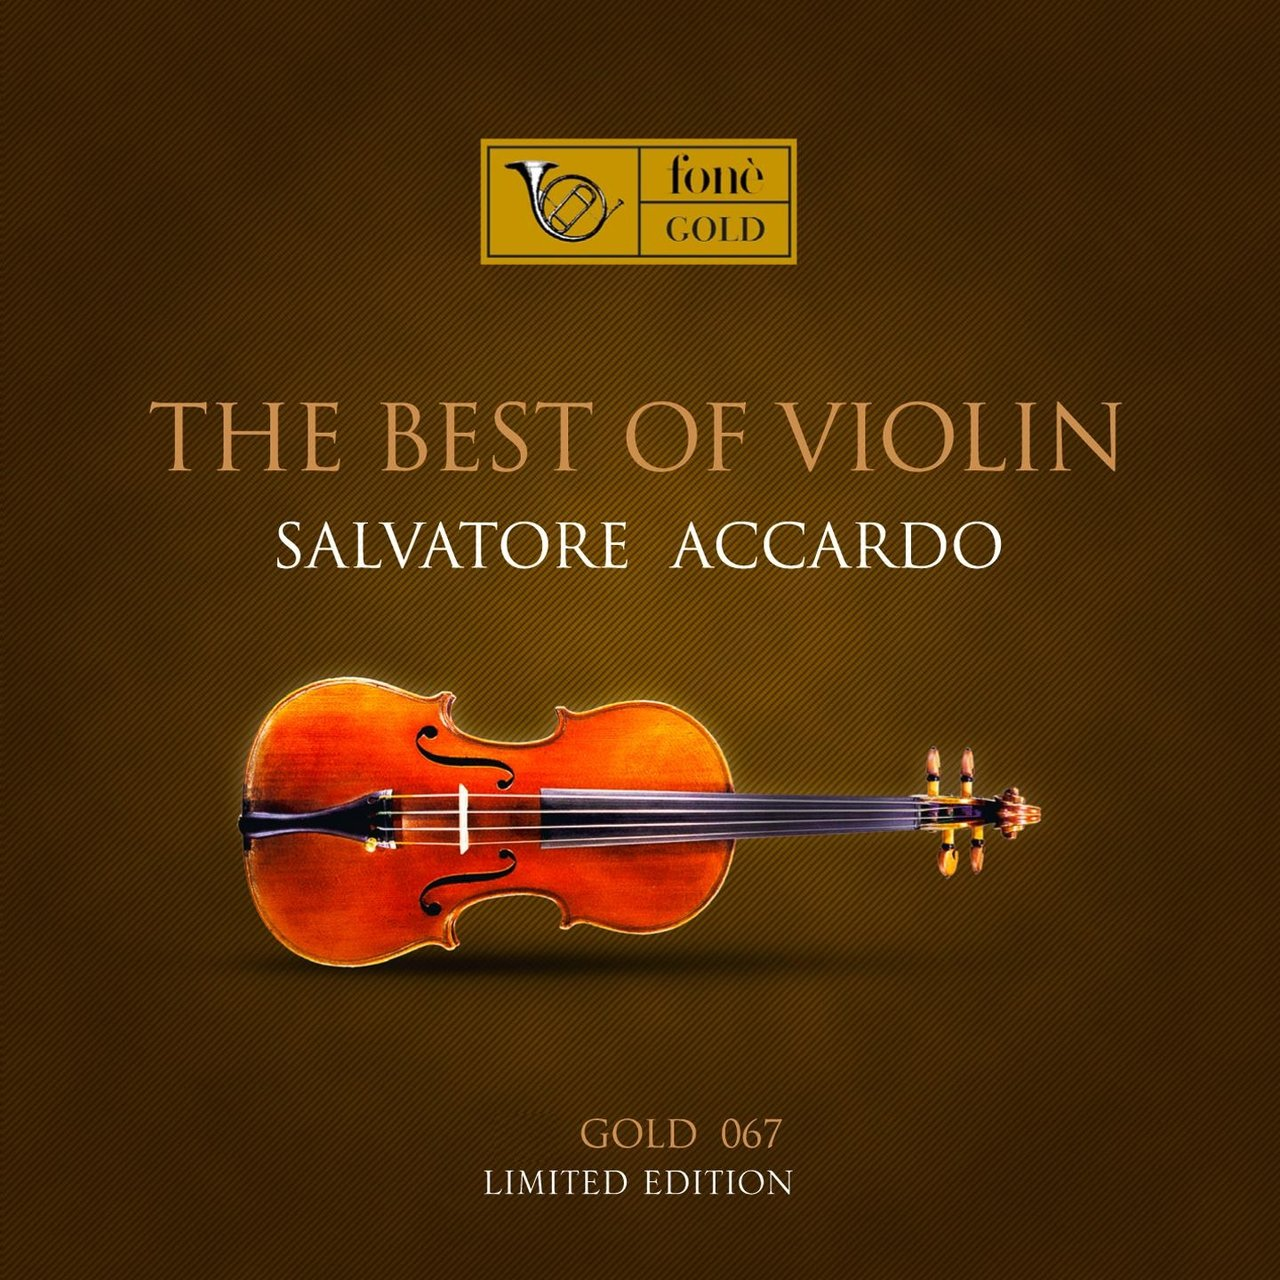 The Best of Violin